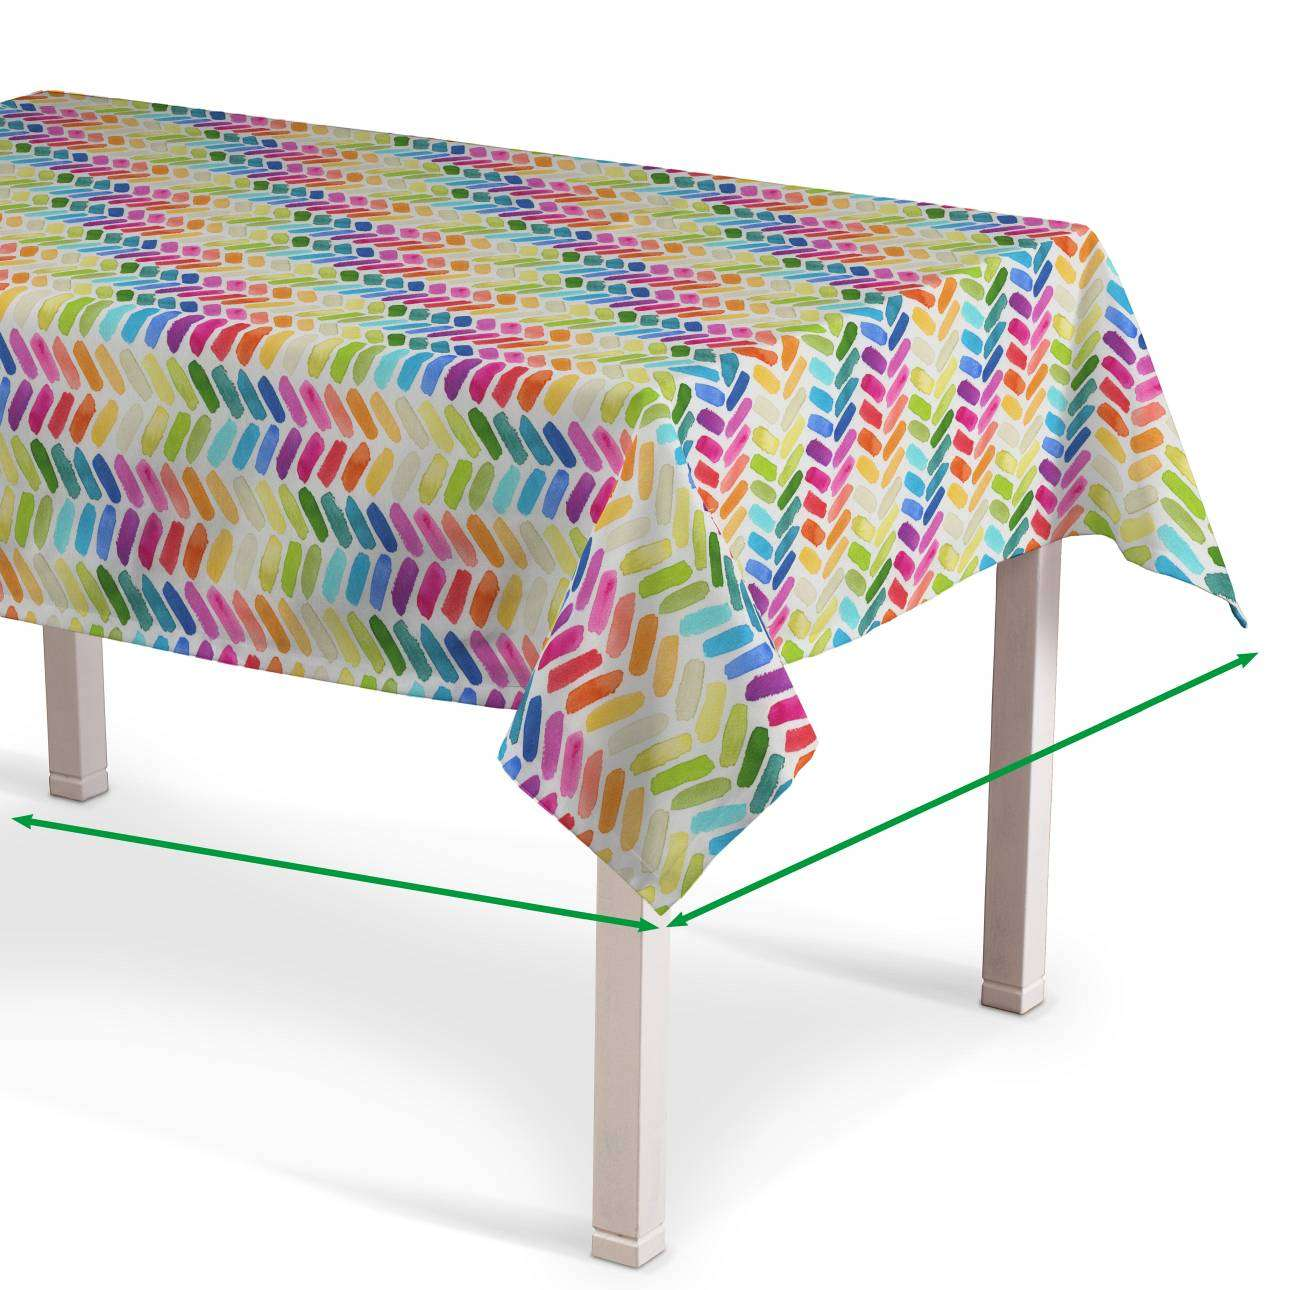 Rectangular tablecloth in collection New Art, fabric: 140-25